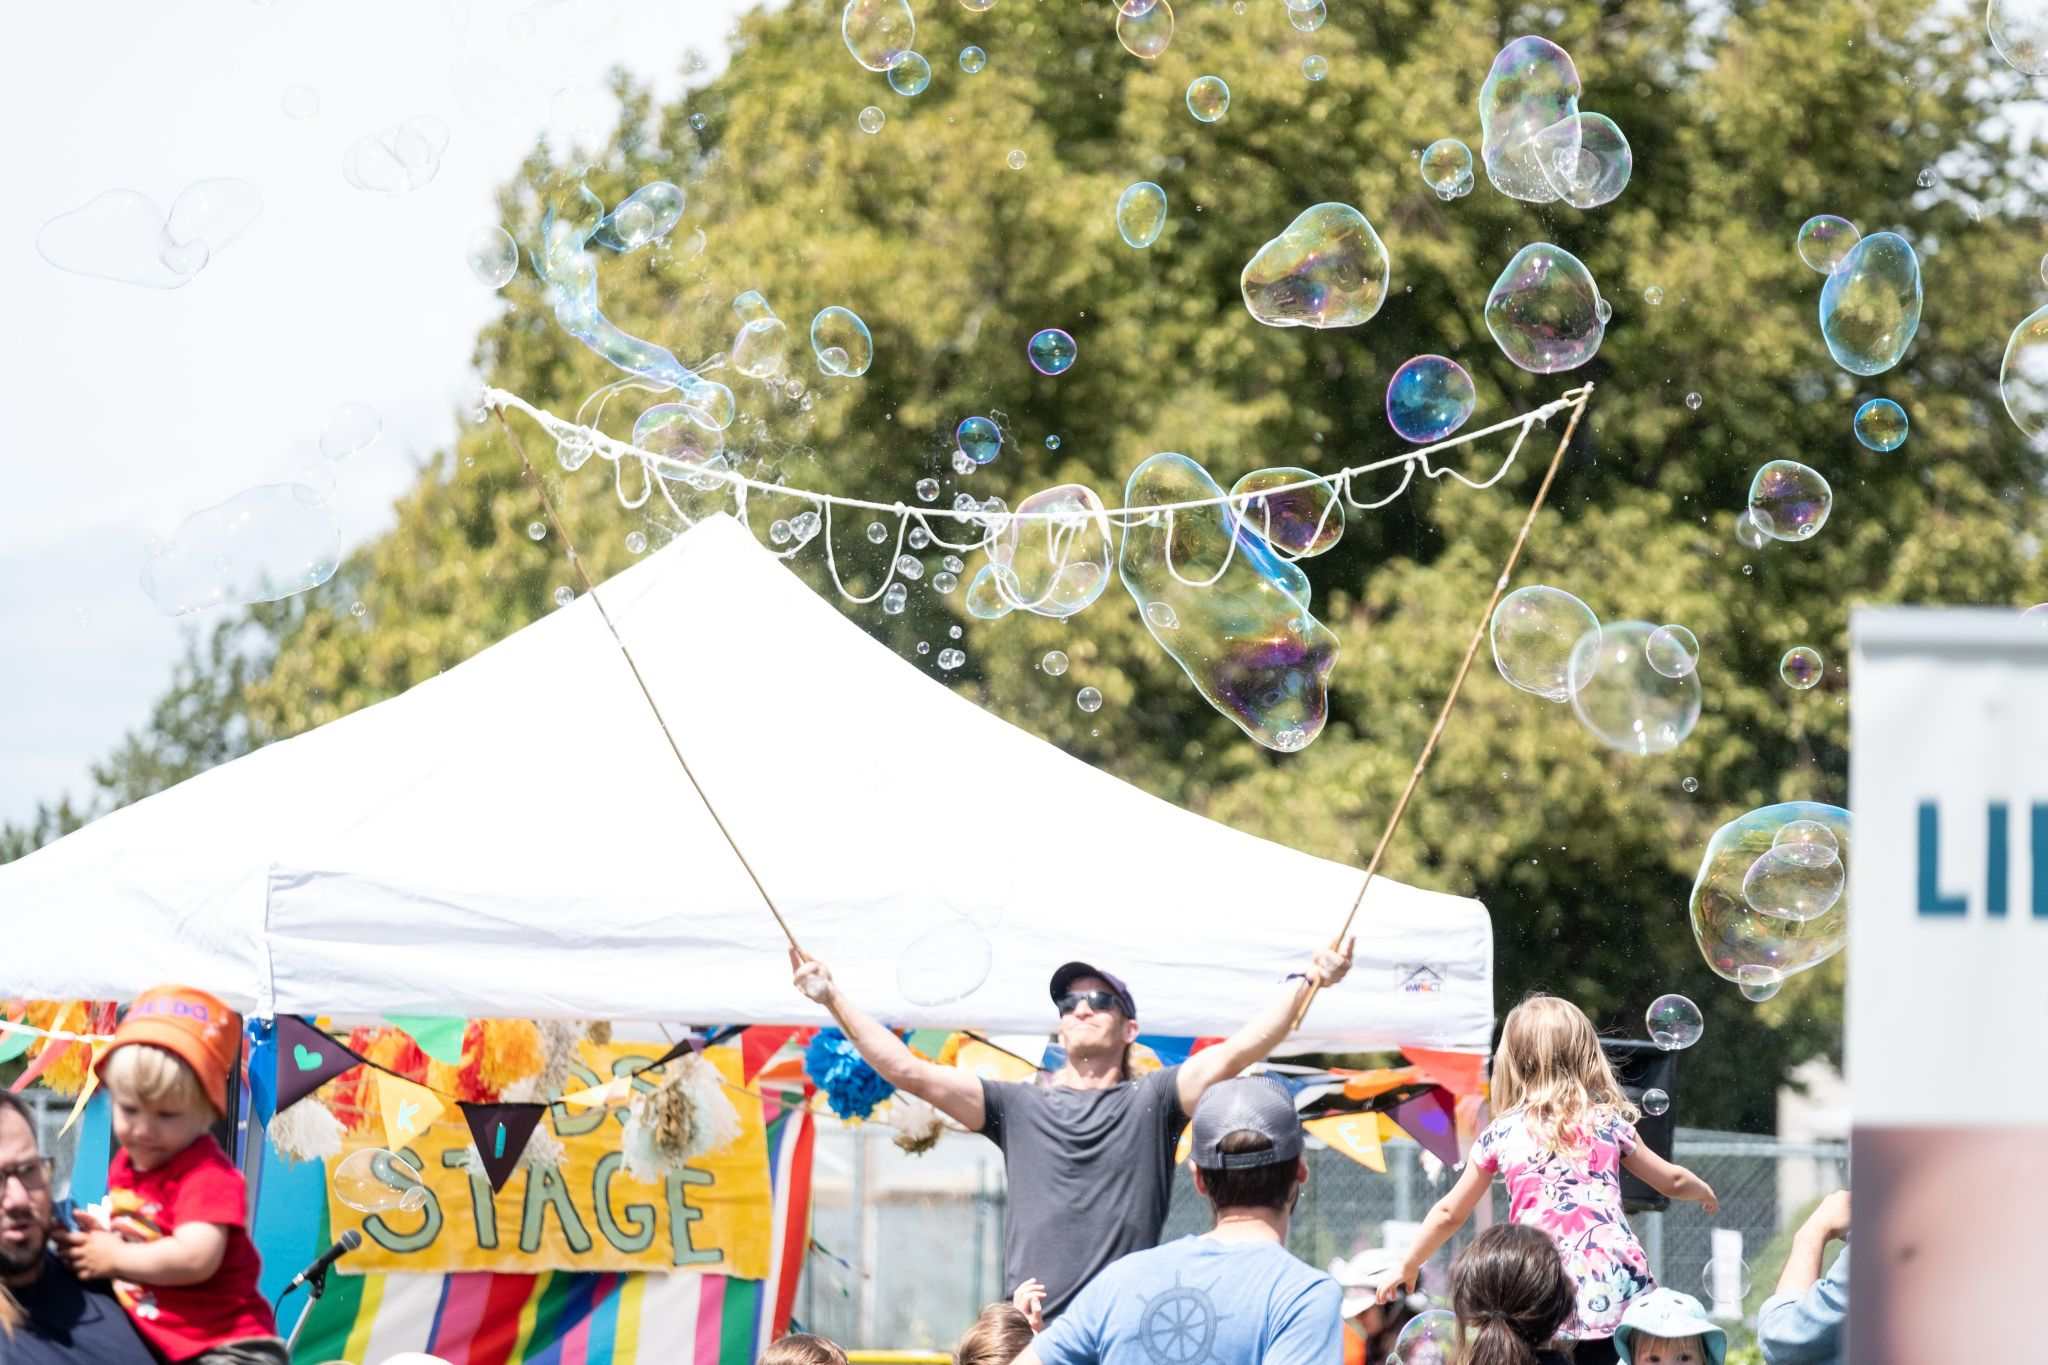 Giant Bubble Man at FernFest 2019. Photo by Webmeister Bud.